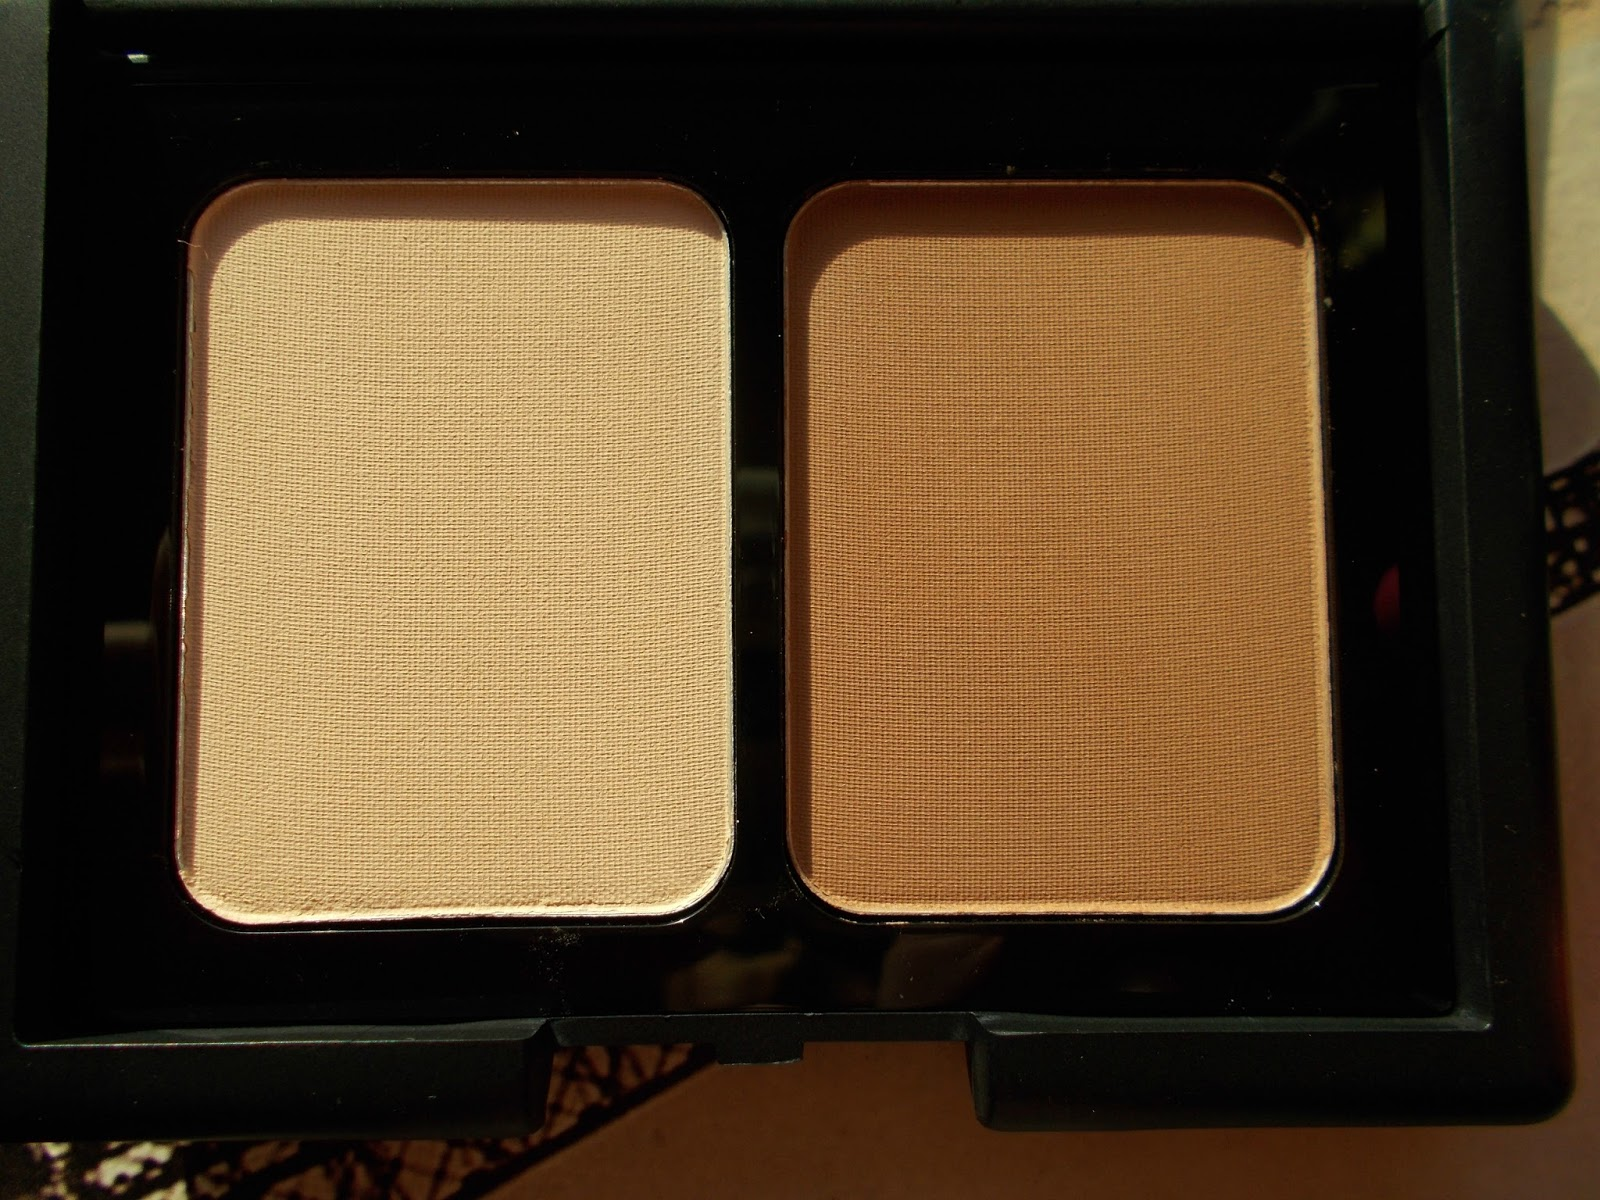 SEVENTEEN define and conquer contour kit in medium